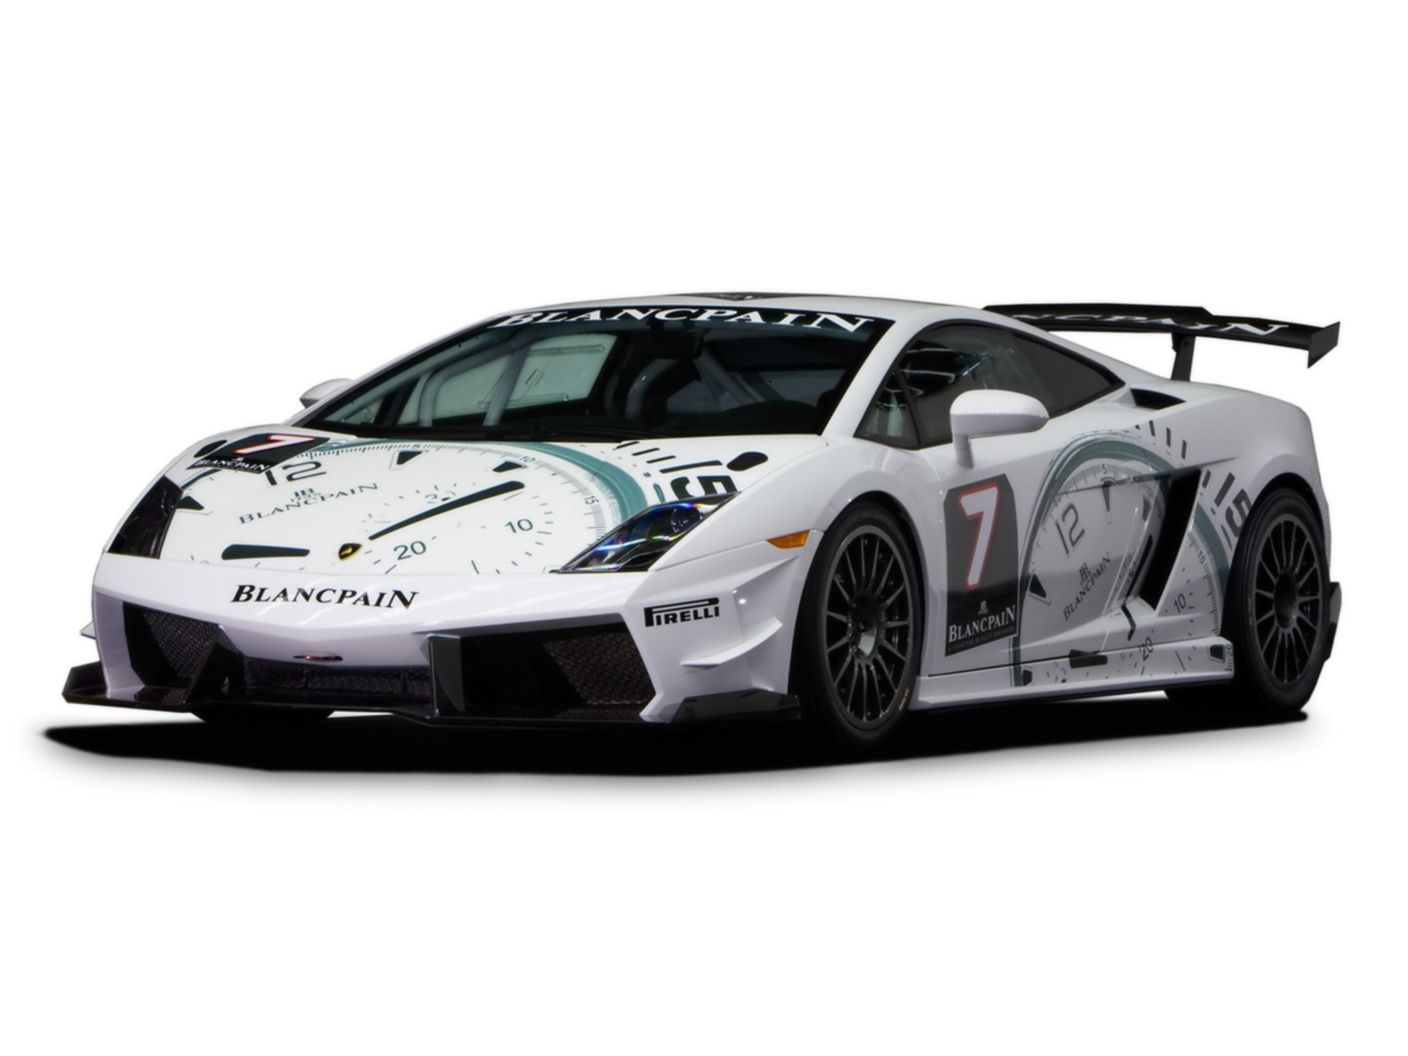 Download free HD 2009 Lamborghini Blancpain Super Trofeo Normal Wallpaper, image